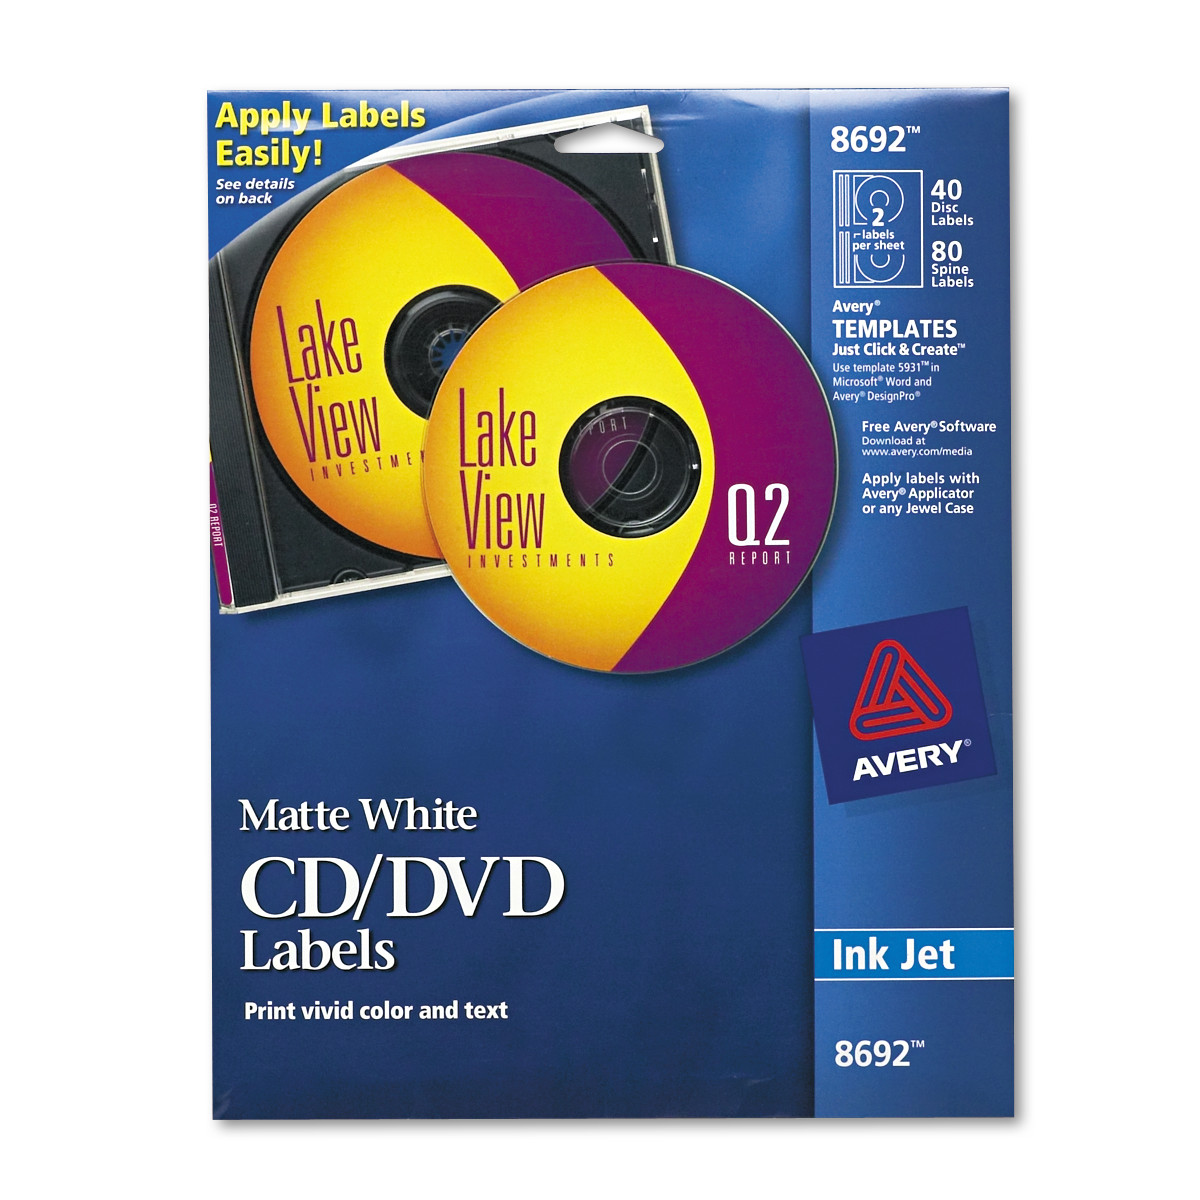 Avery Inkjet Cd Labels Matte White 40pack Walmart